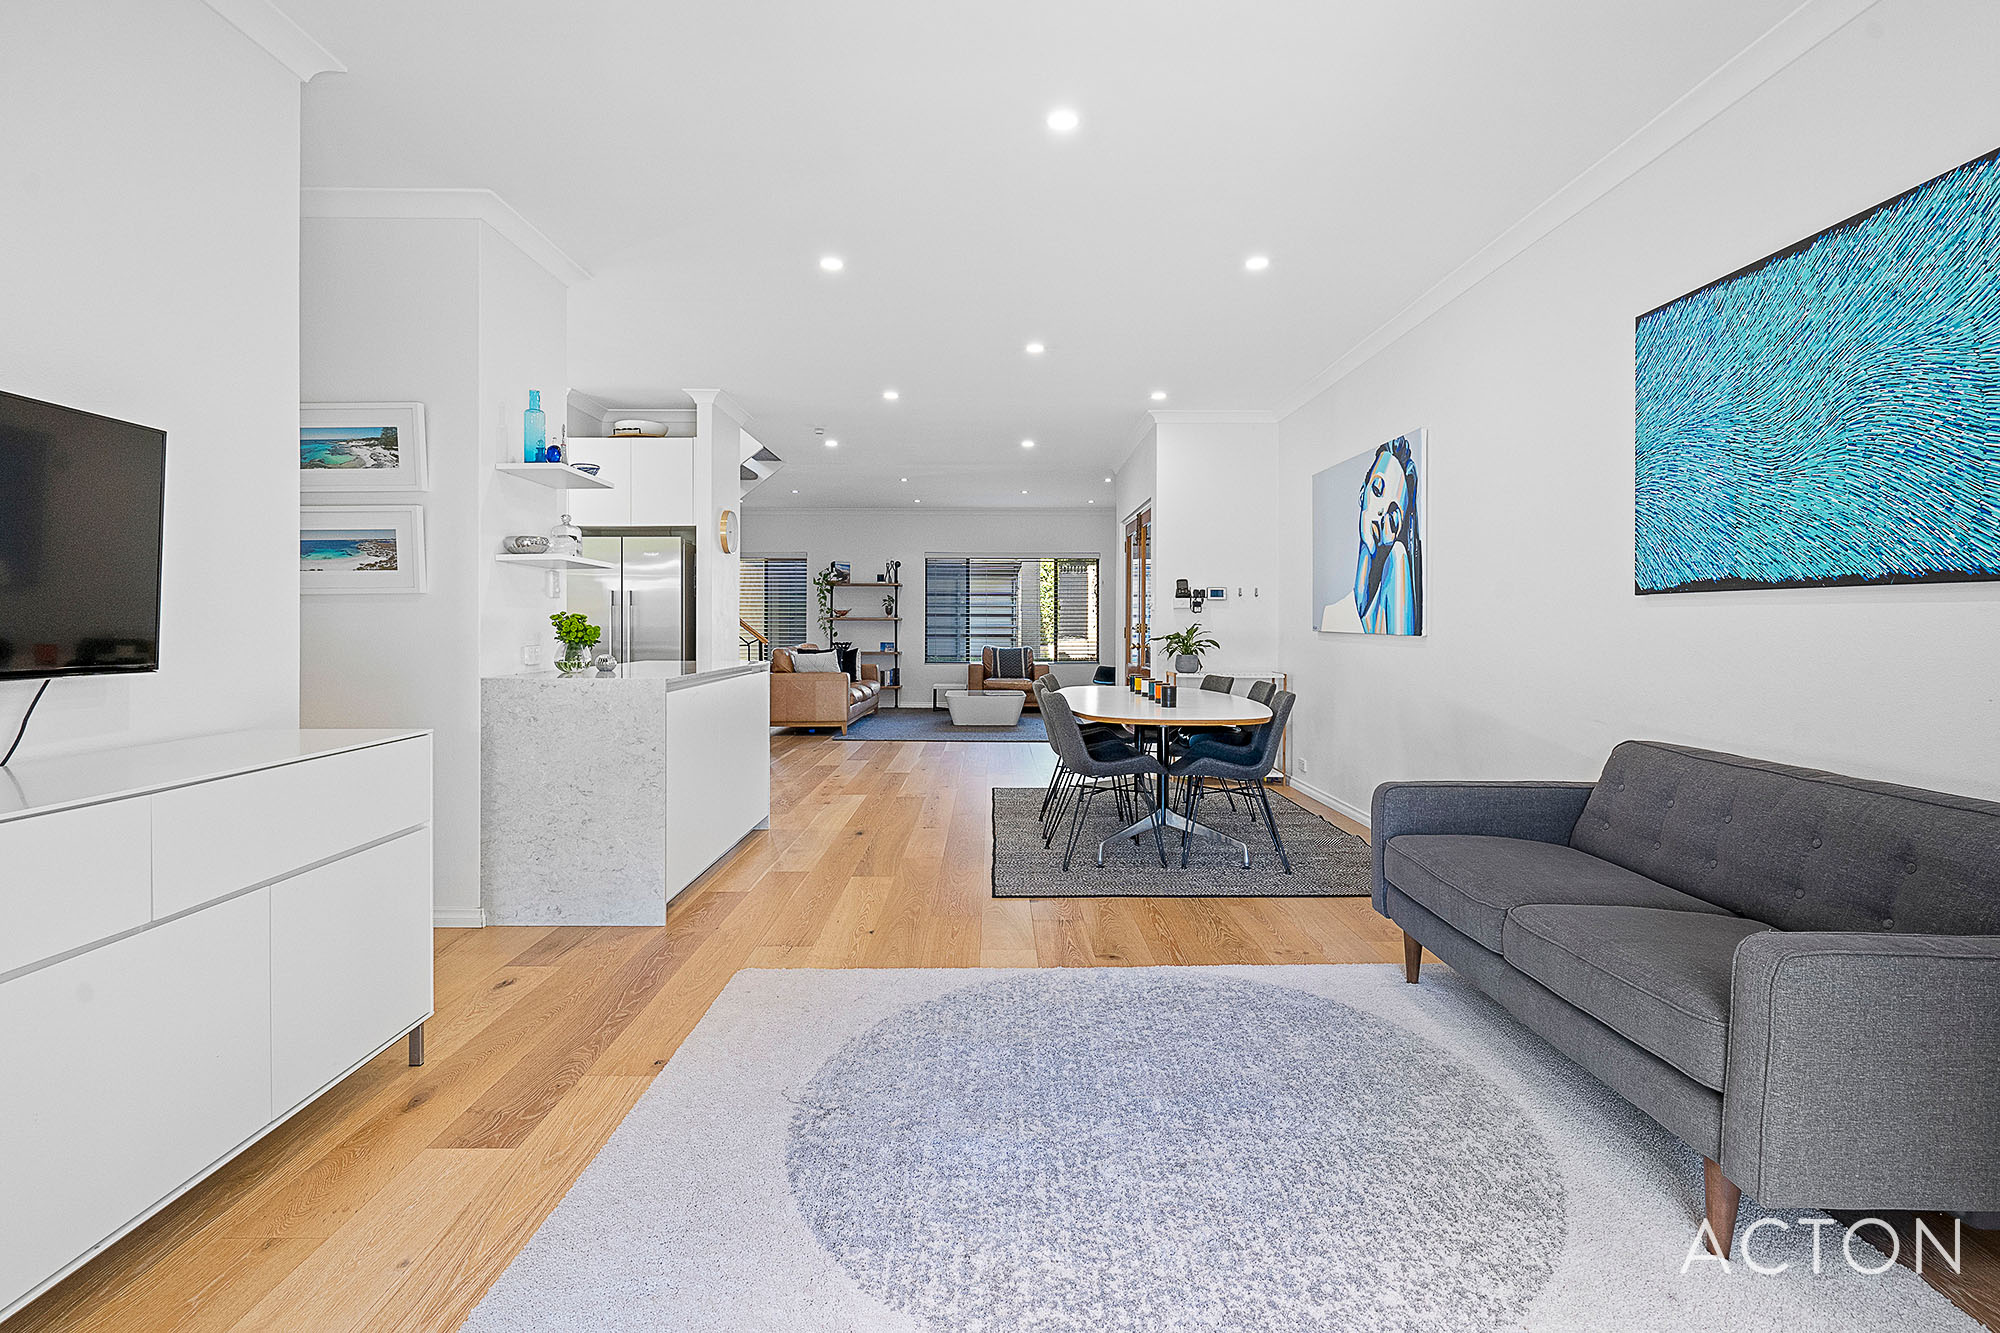 47 Wood Street Swanbourne - House For Sale - 23271764 - ACTON Cottesloe